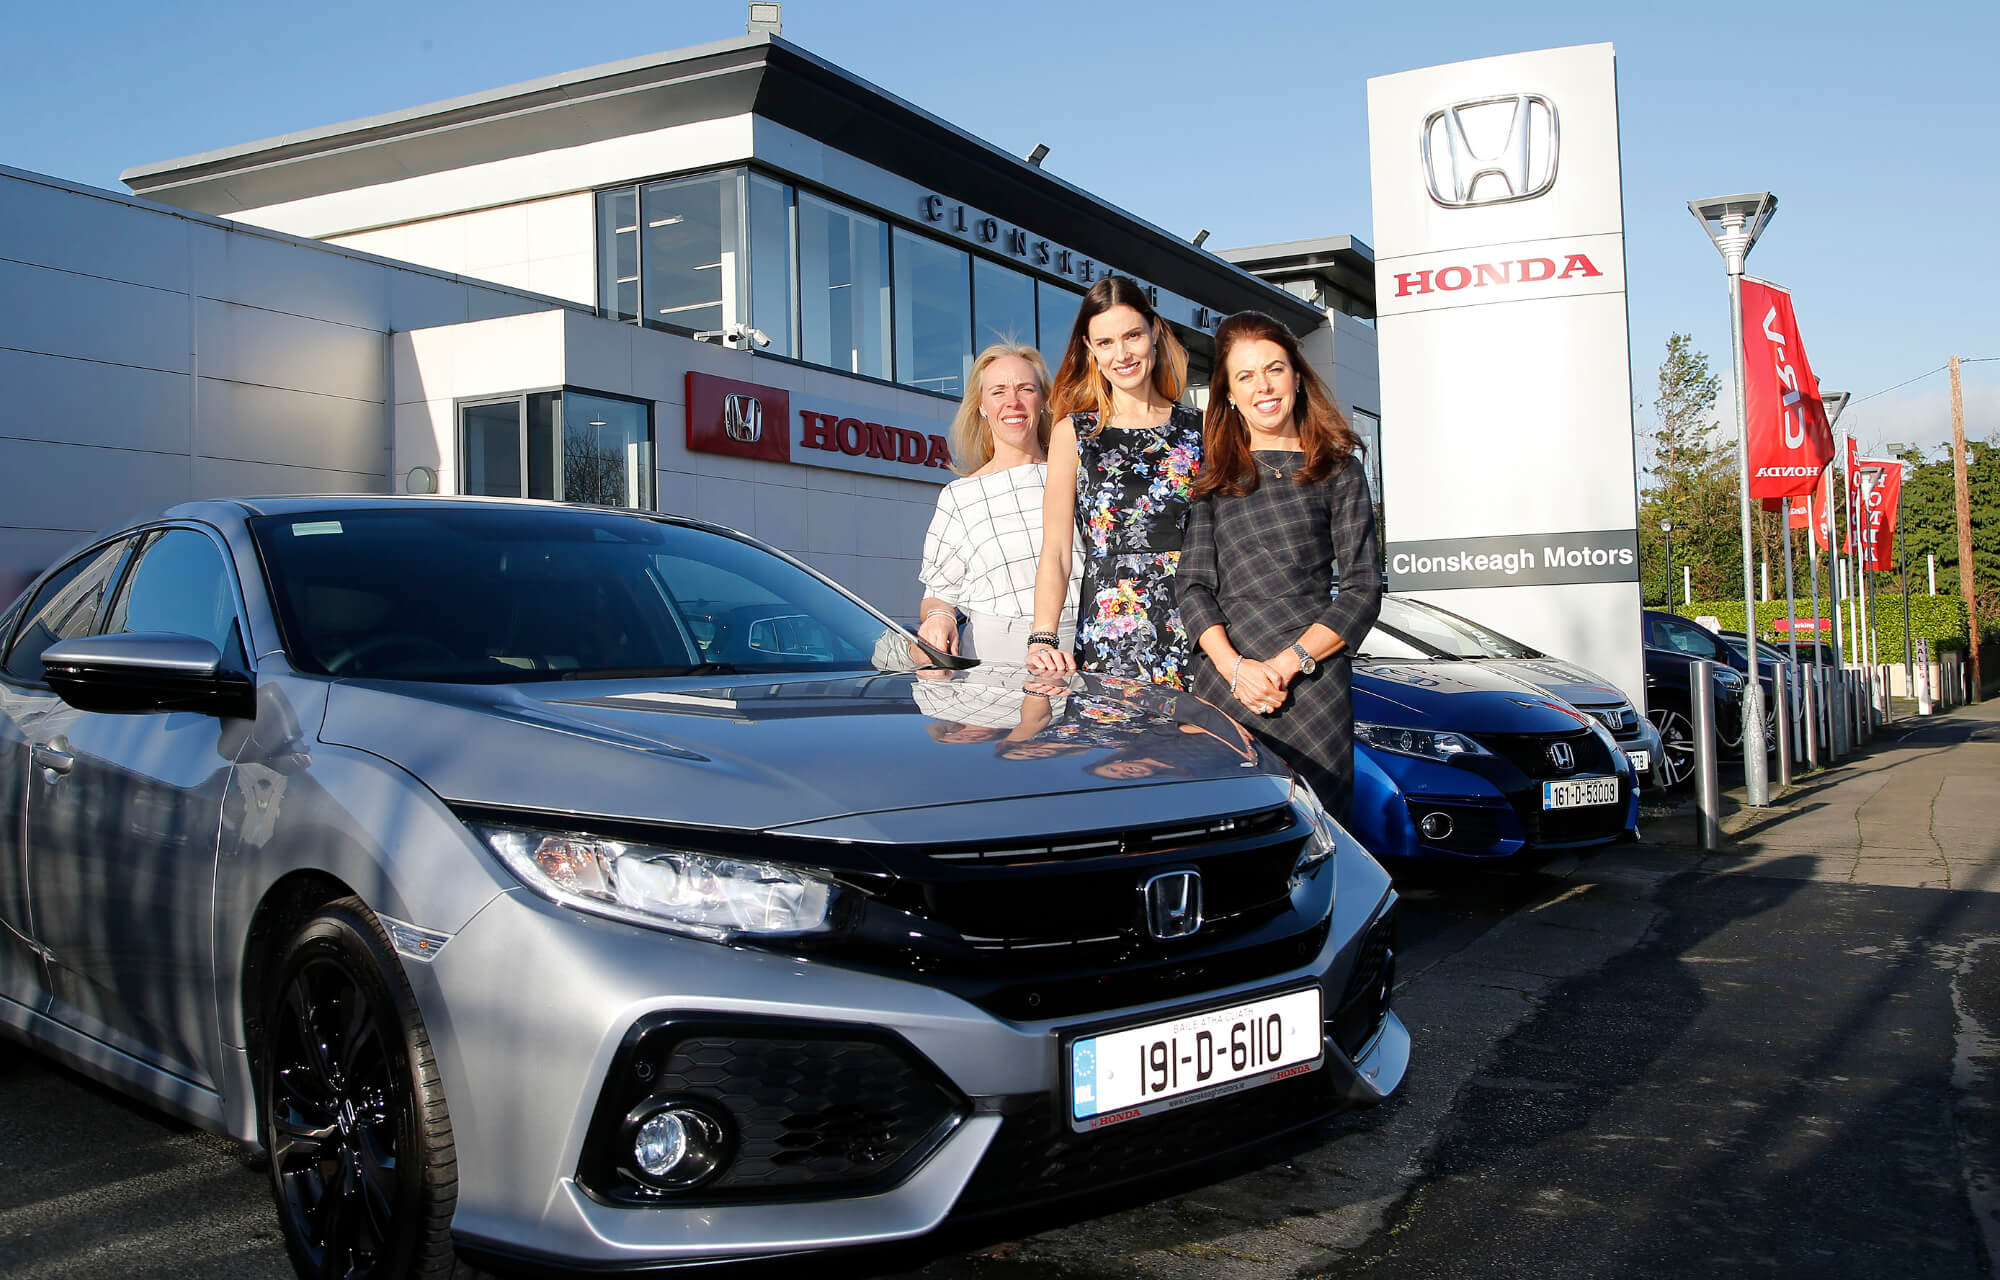 Sharon Murphy Director of Clonskeagh Motors, Alison Canavan Clonskeagh Motors Honda brand ambassador, international model, bestselling author and health and wellness coach and Fiona Murphy Director of Clonskeagh Motors